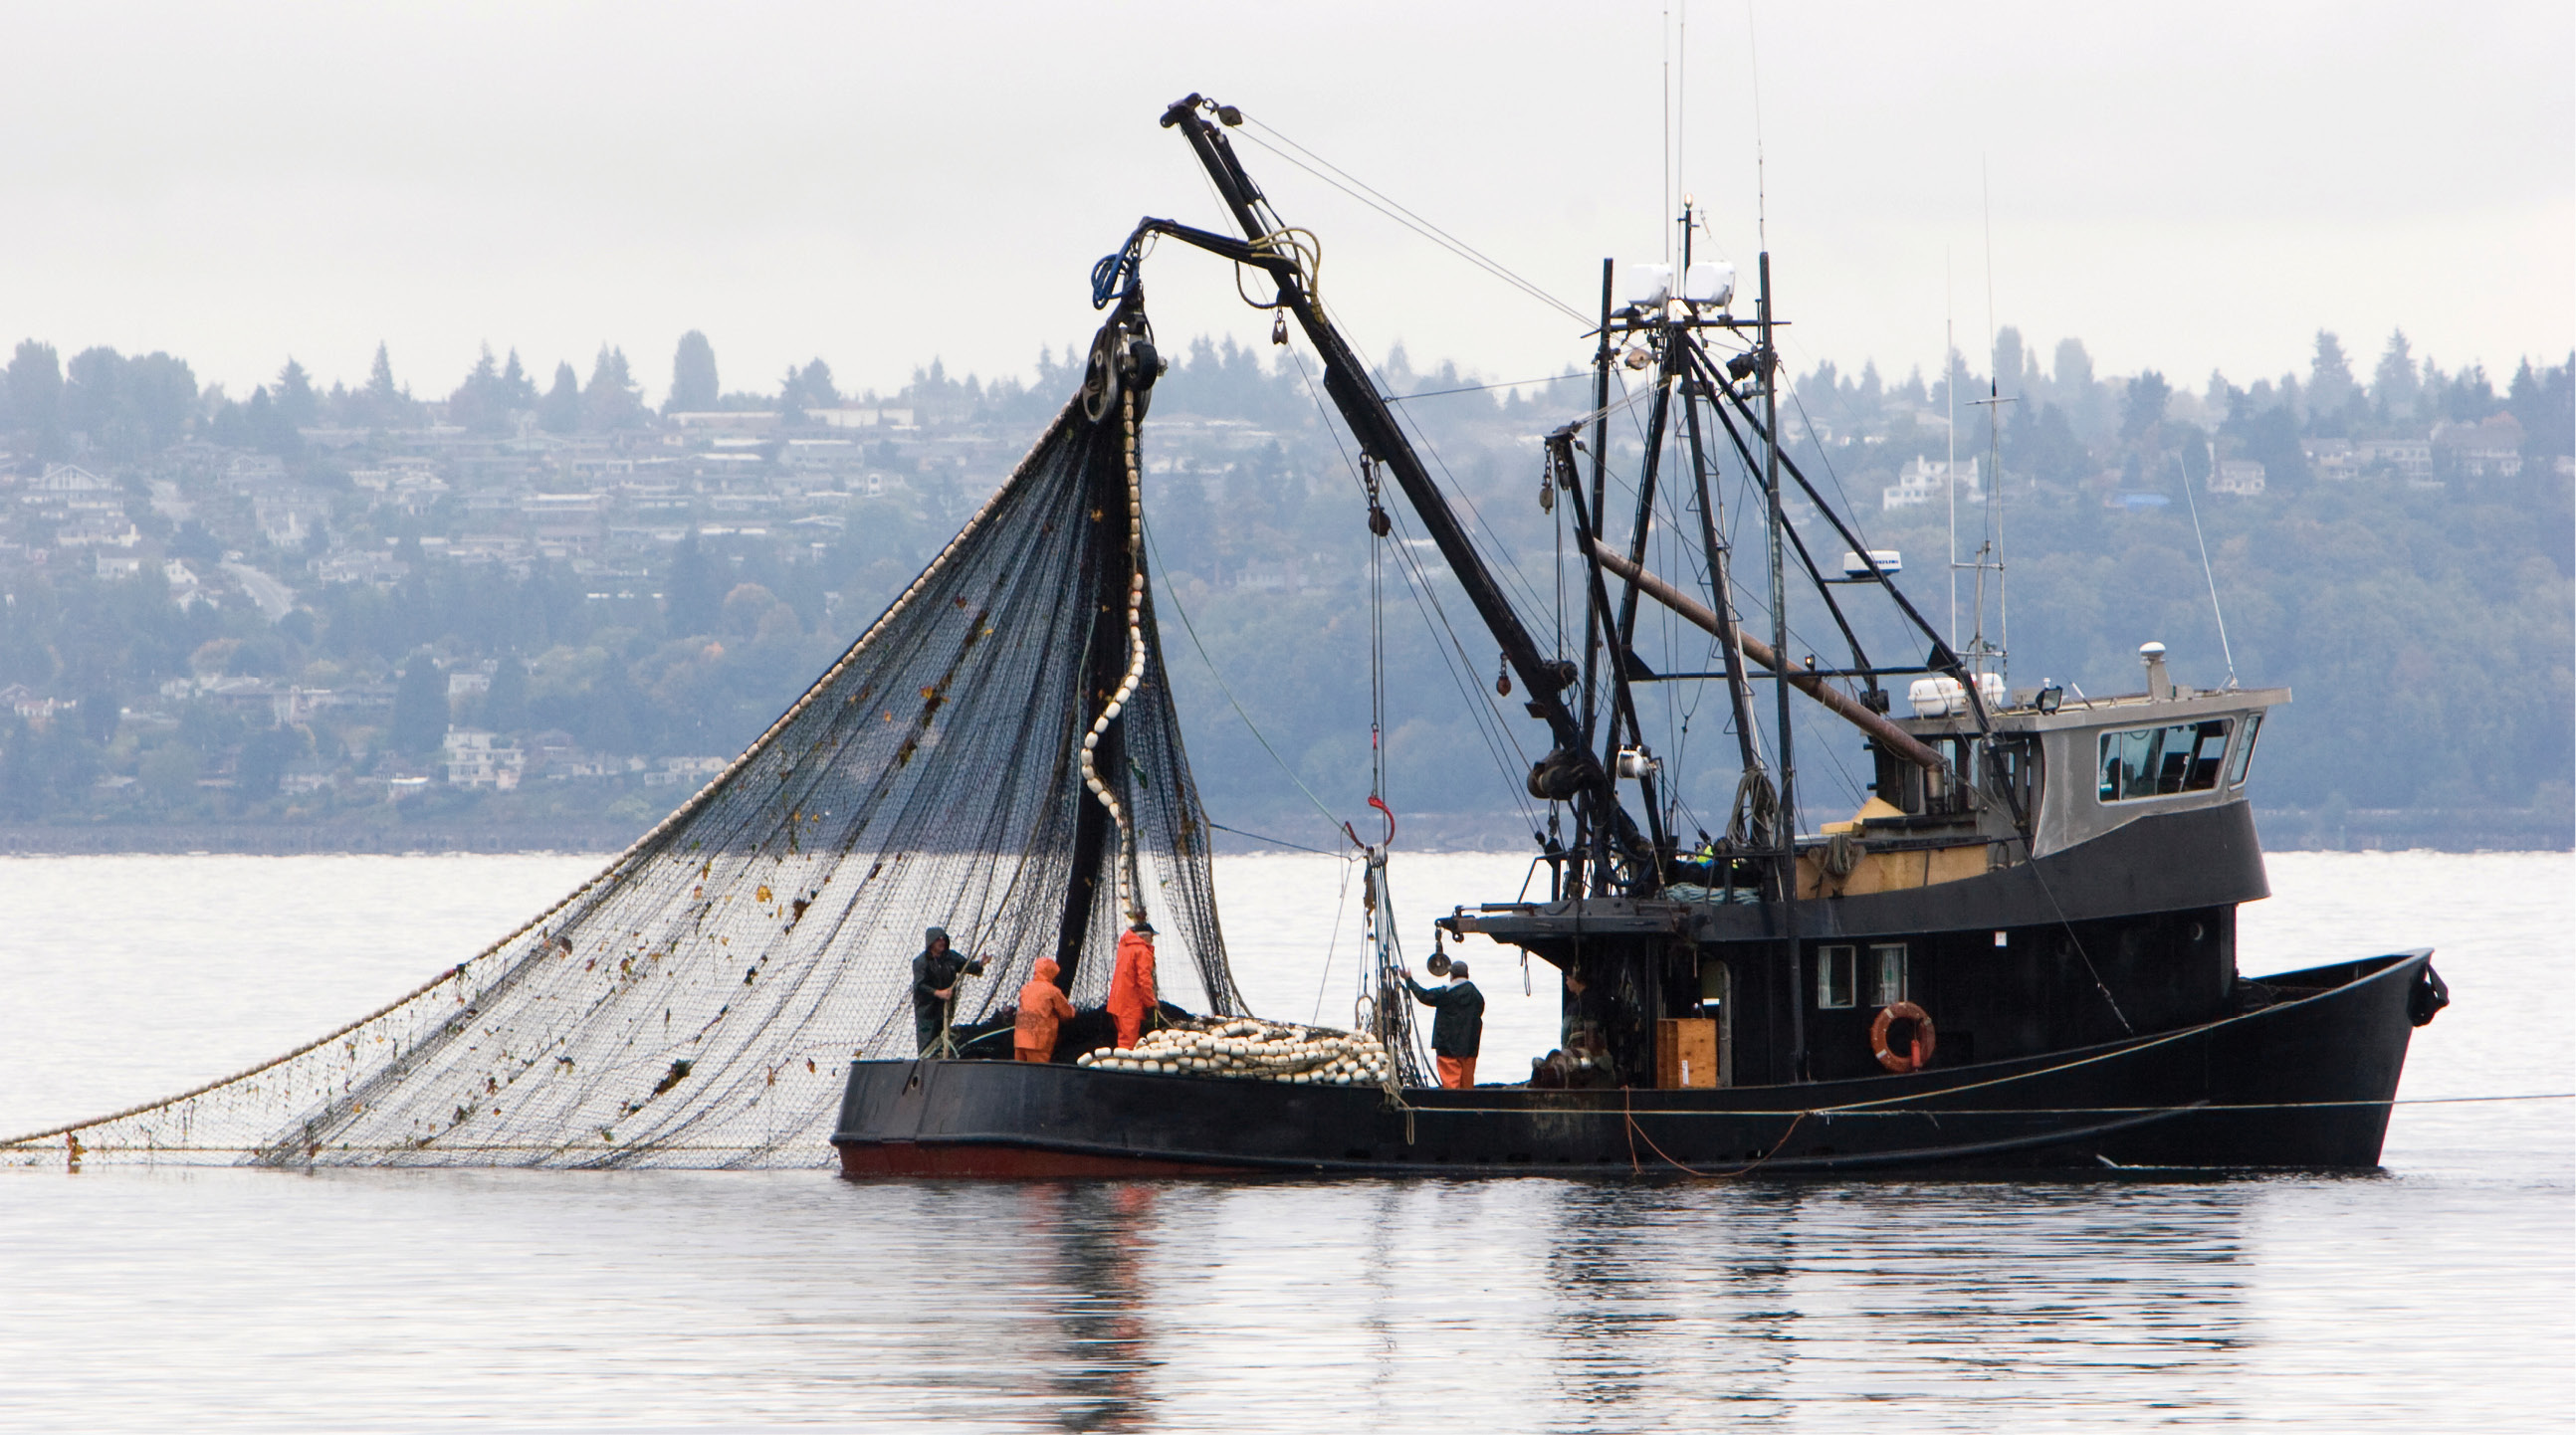 What Is Bycatch, And Which Fishing Methods Are Responsible? - Food